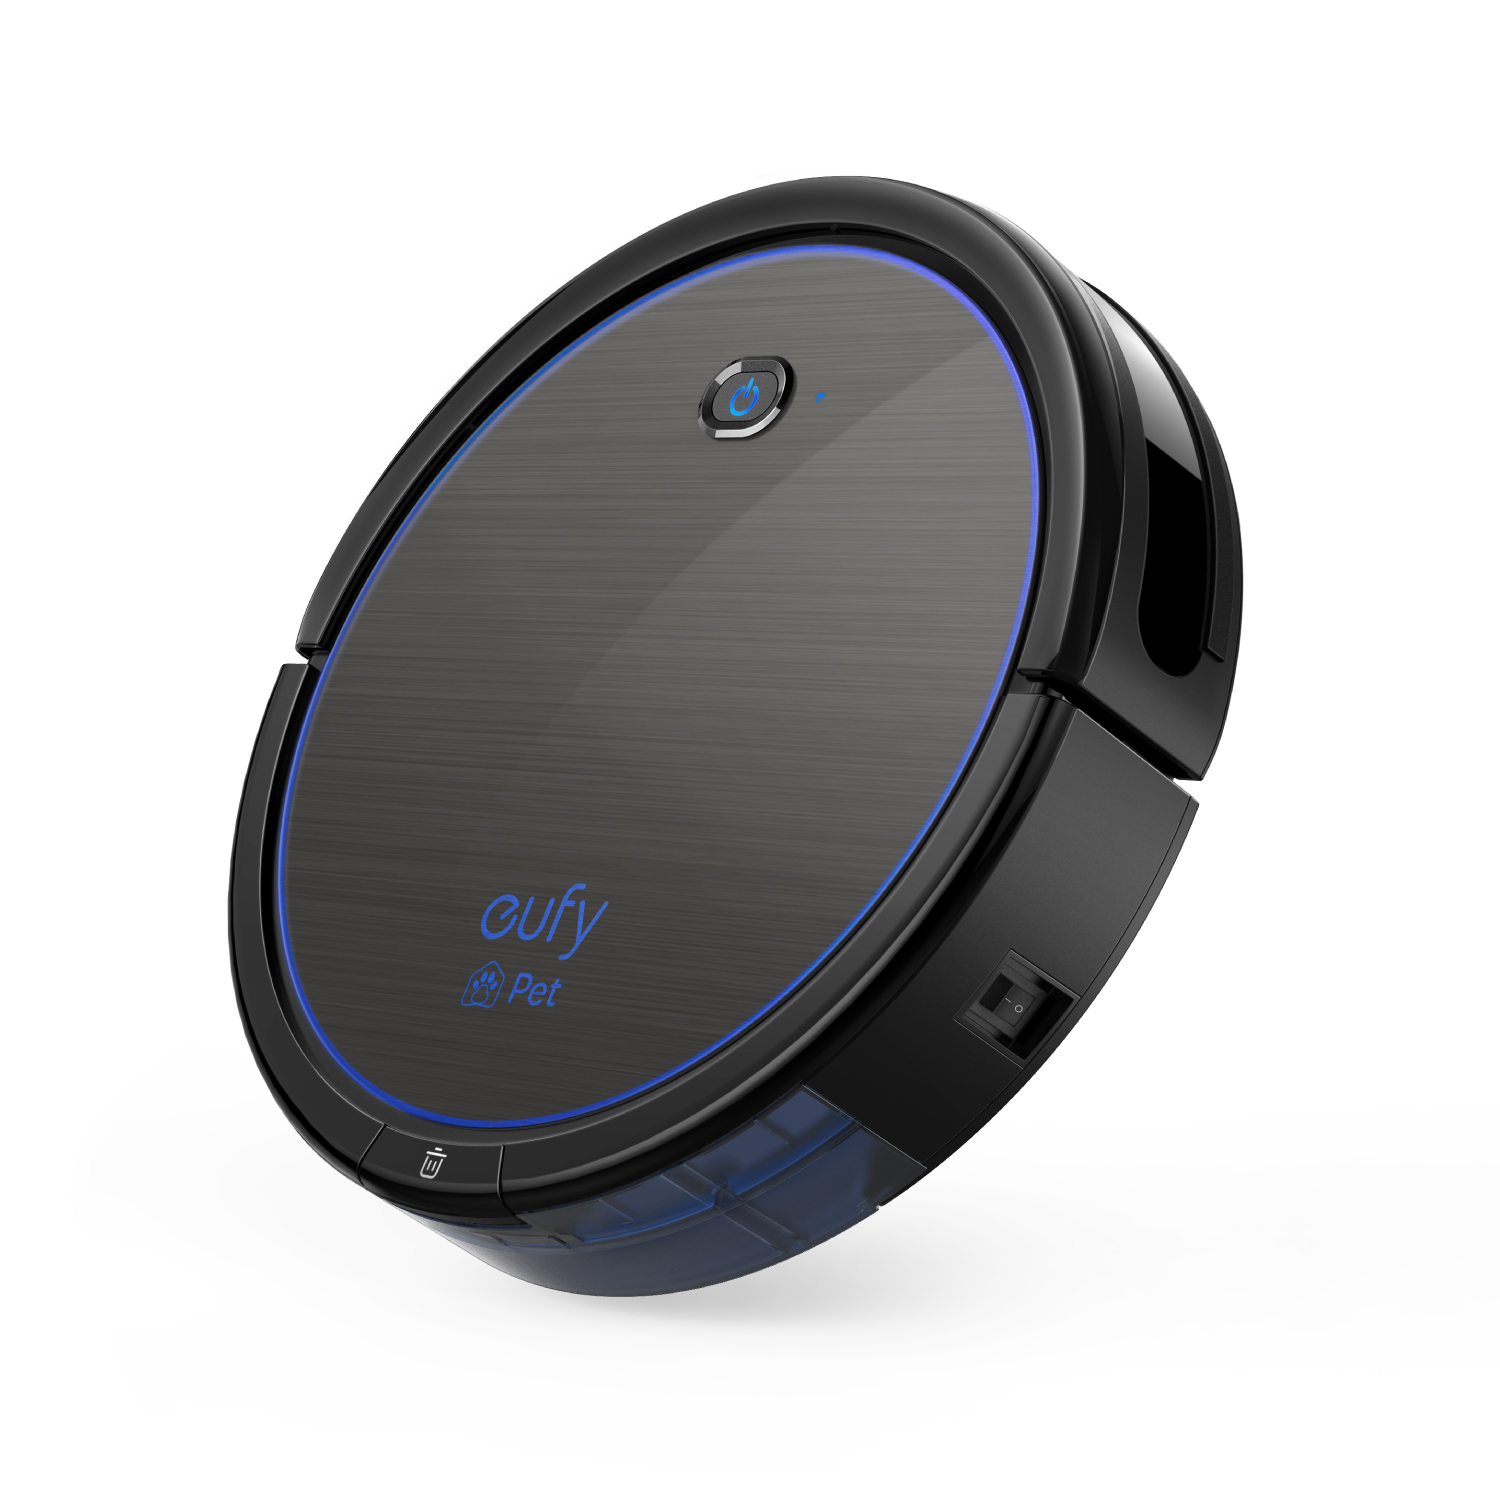 Eufy RoboVac 11C Pet Edition Robotic Vacuum